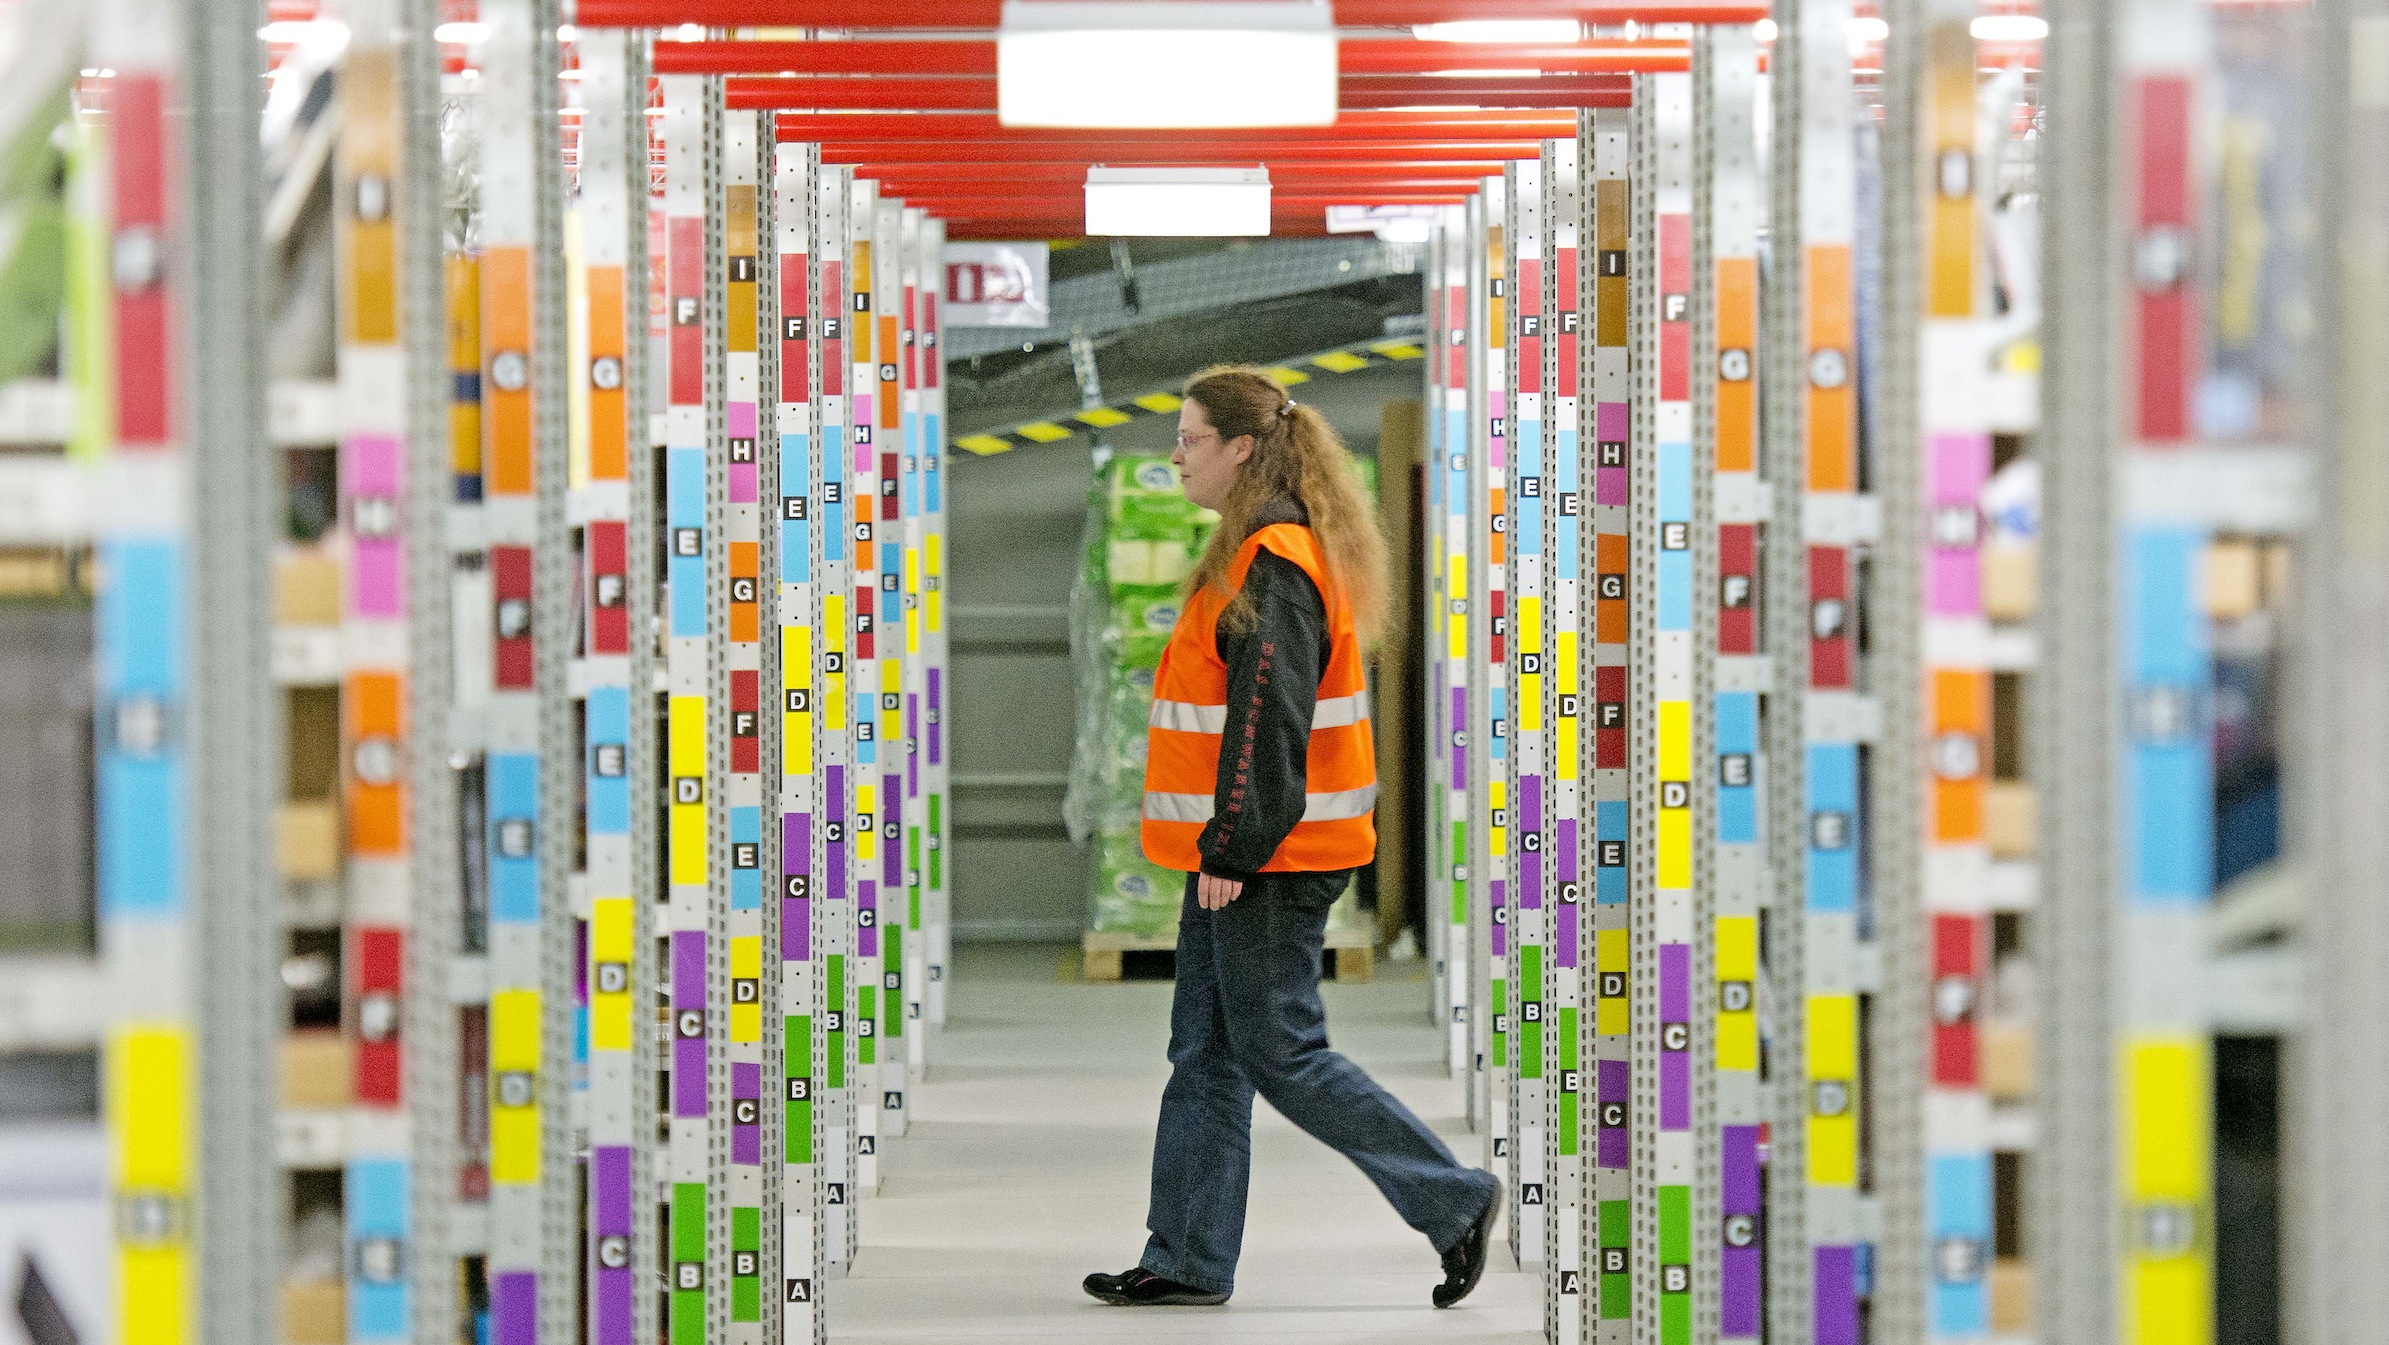 An employee walks in the distribution center of the online retailer Amazon in Leipzig, central Germany, Wednesday, March 26, 2014. (AP Photo/Jens Meyer)